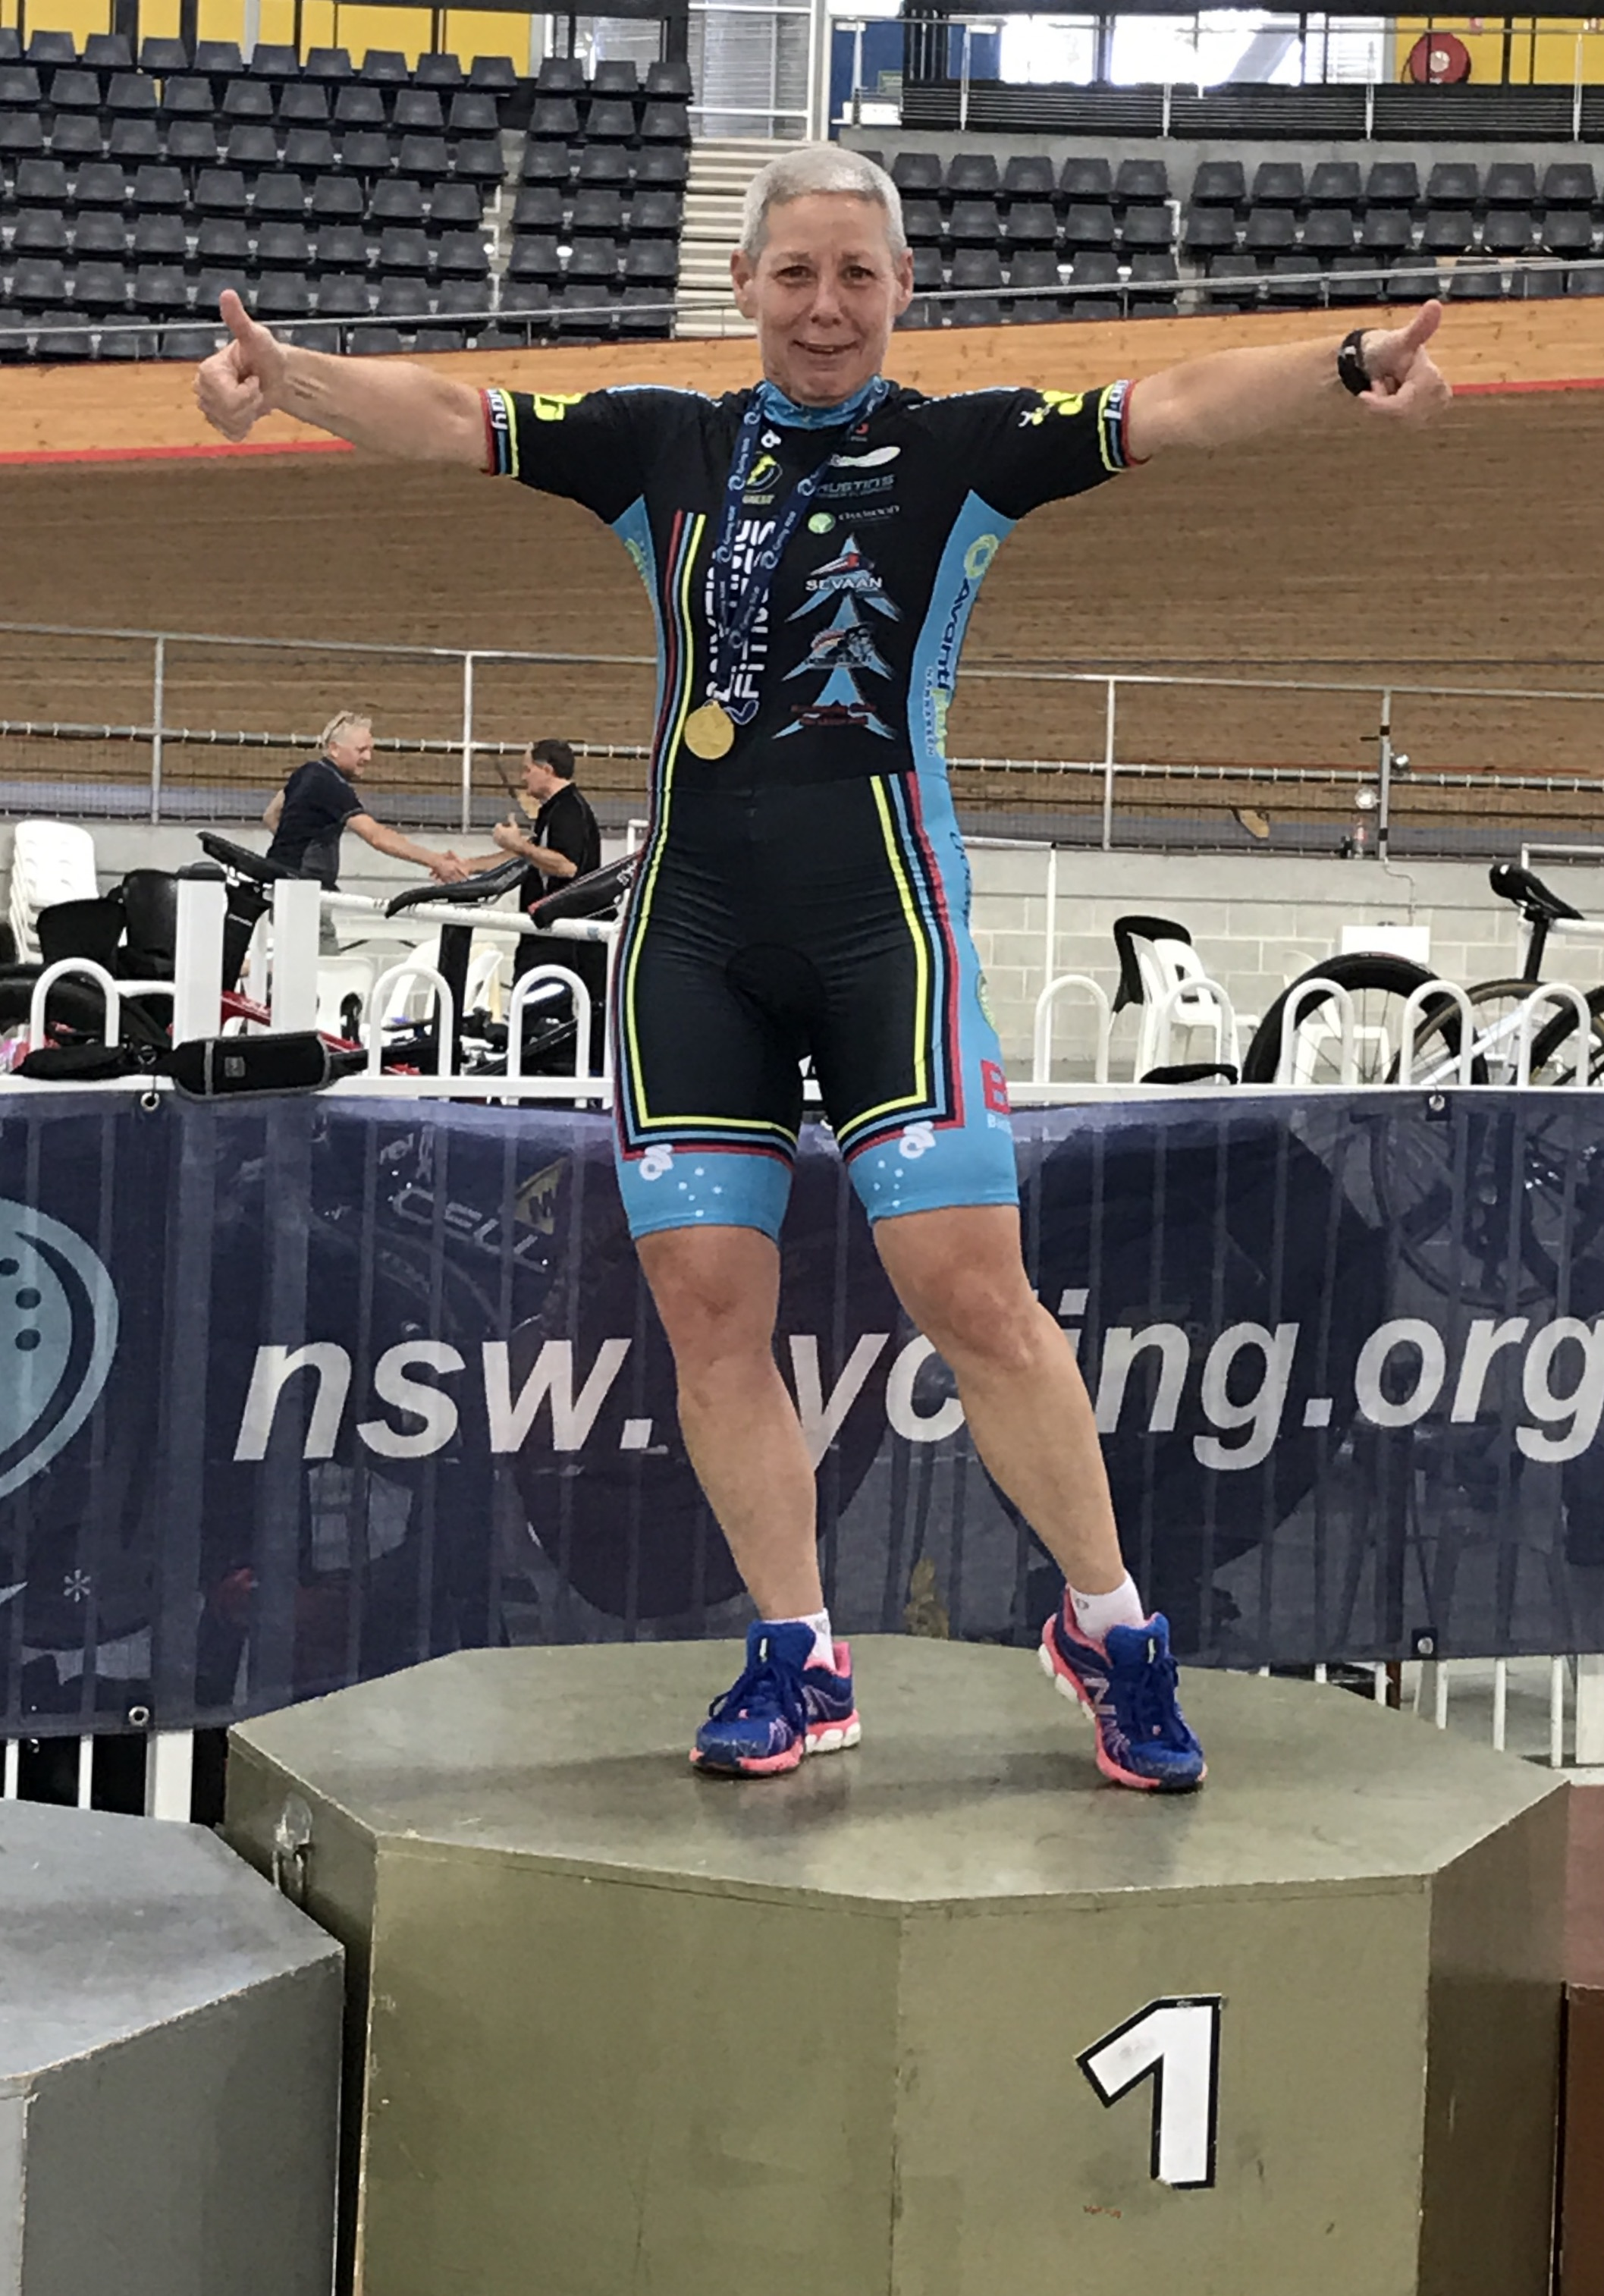 NSW Masters Championships - Lise Benjamin doing the  Podium Jig  for taking Gold in the W6 Scratch Race